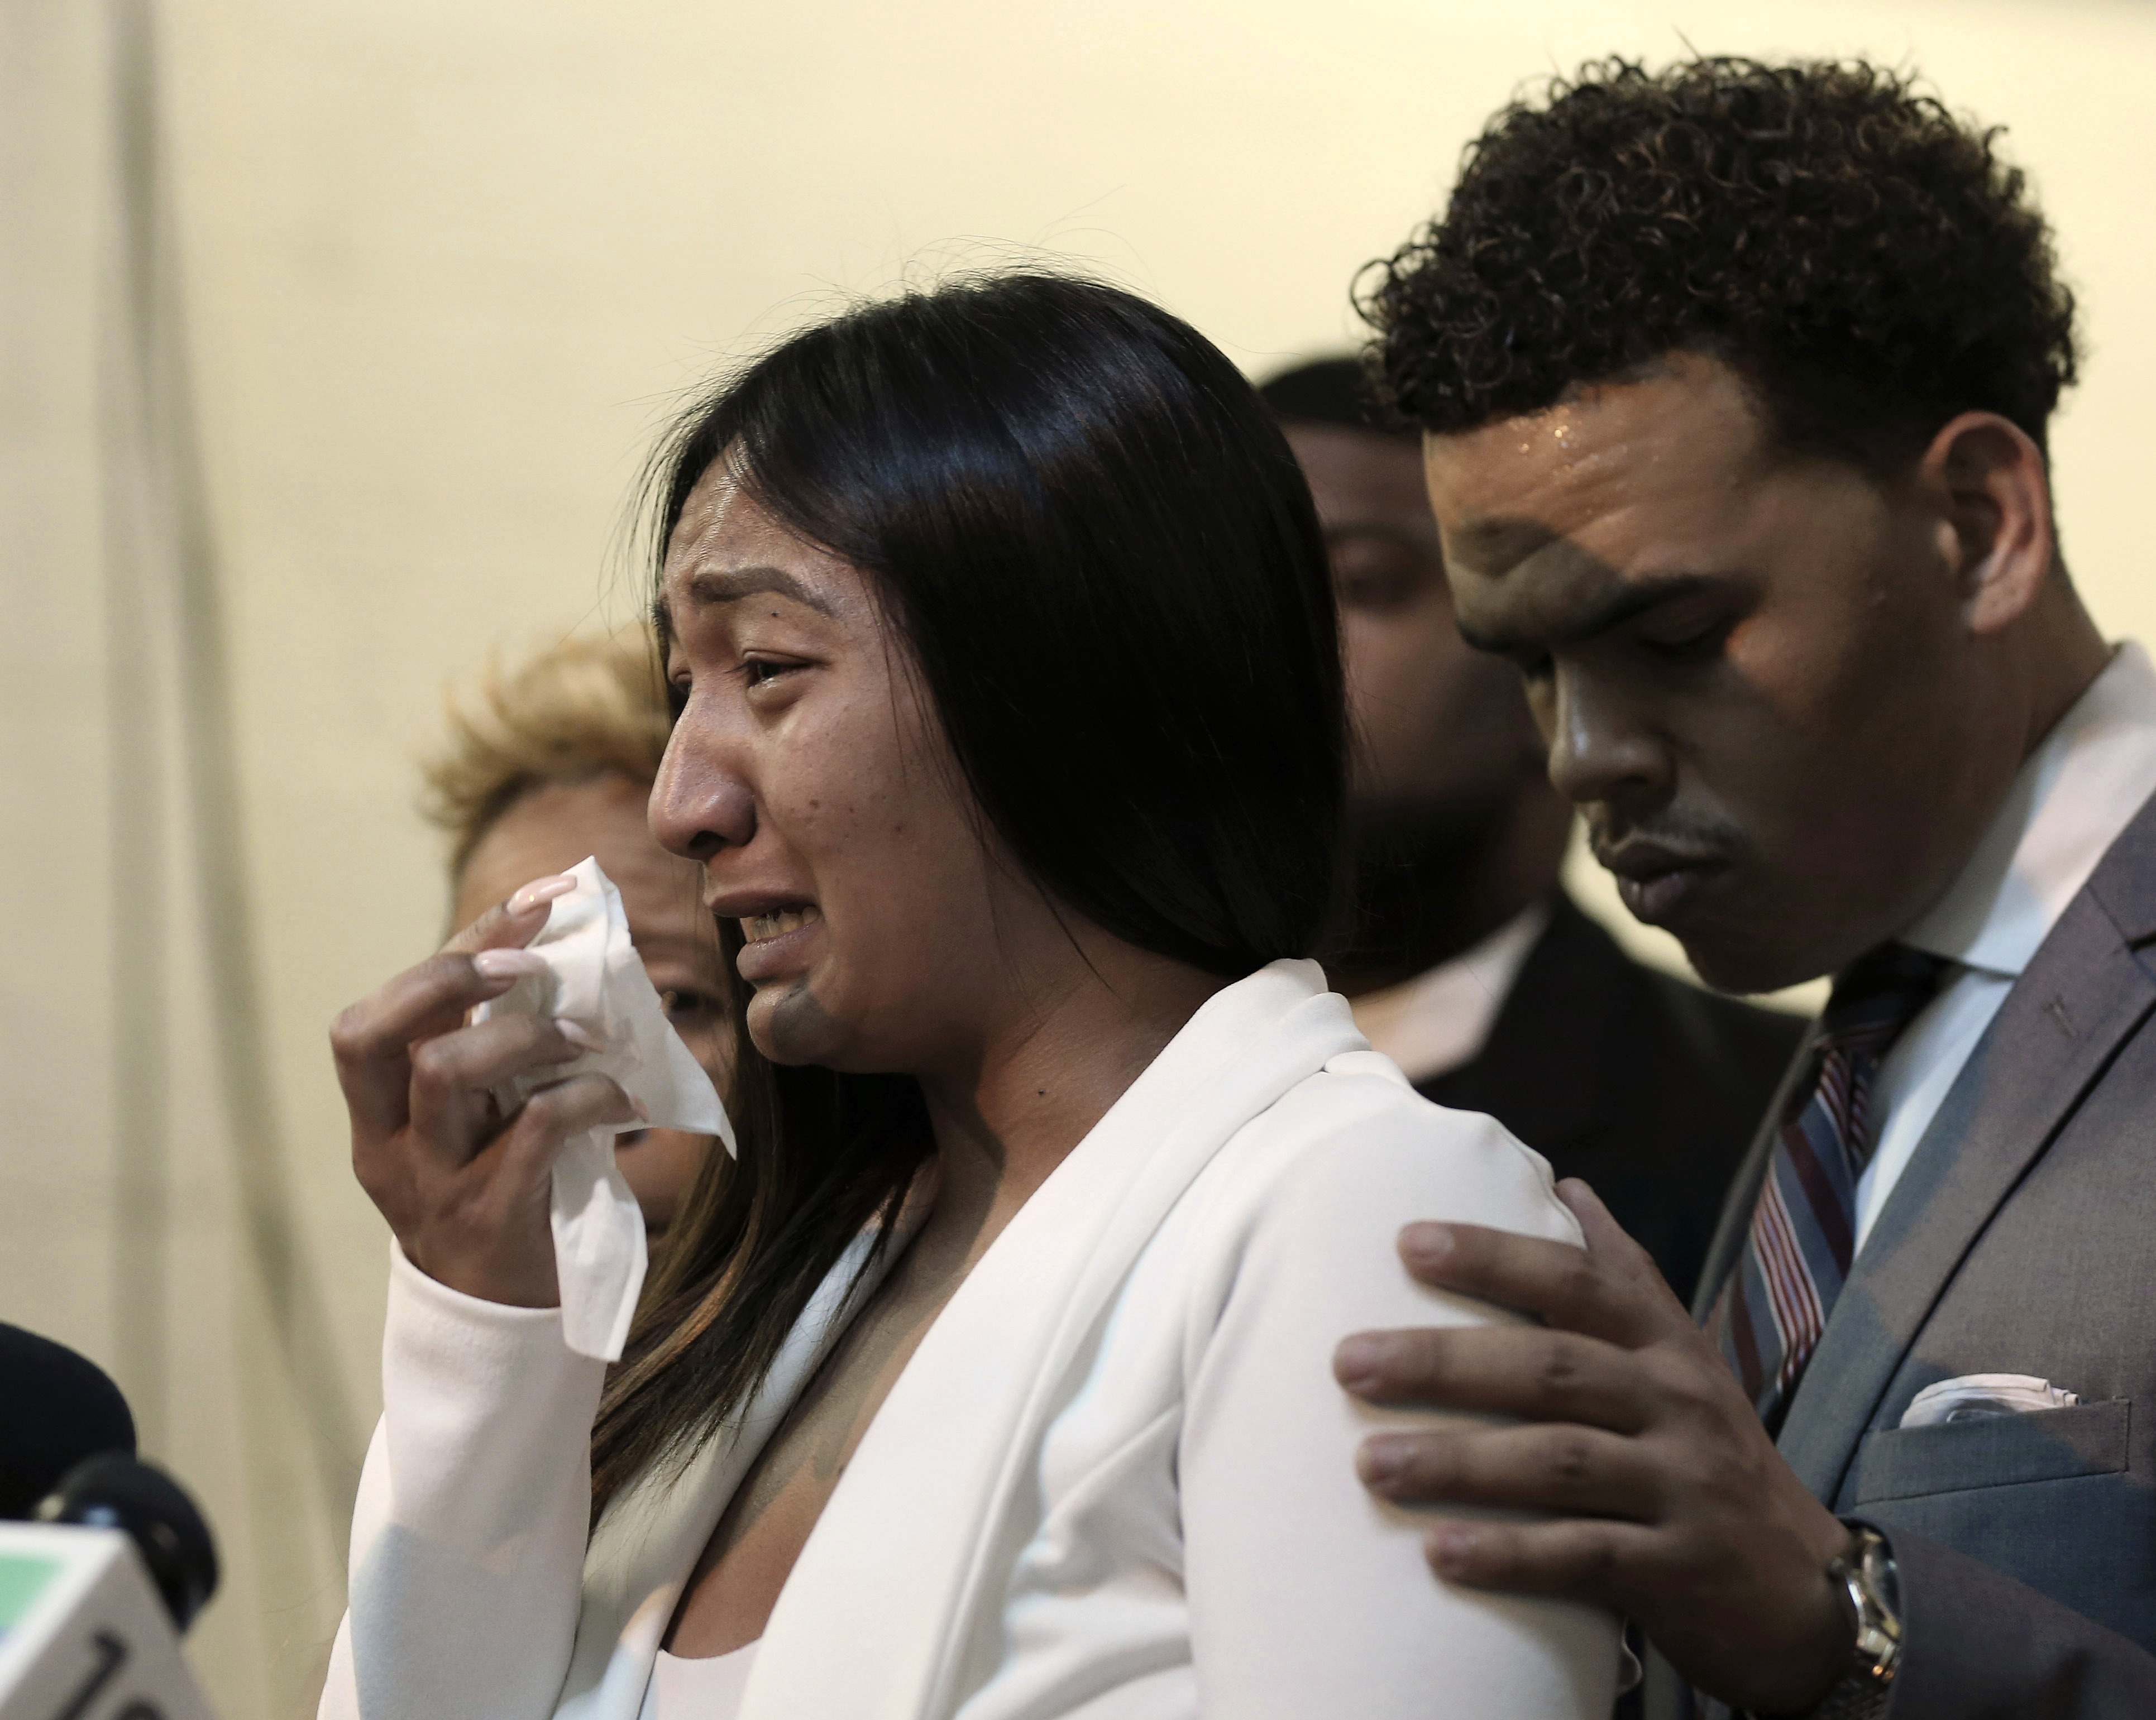 Salena Manni, the fiancee of Stephon Clark, who was shot and killed by Sacramento police in 2018, cries as she discusses the decision to not file charges against the two officers involved, during a news conference in Sacramento, Calif., Saturday, March 2, 2019.